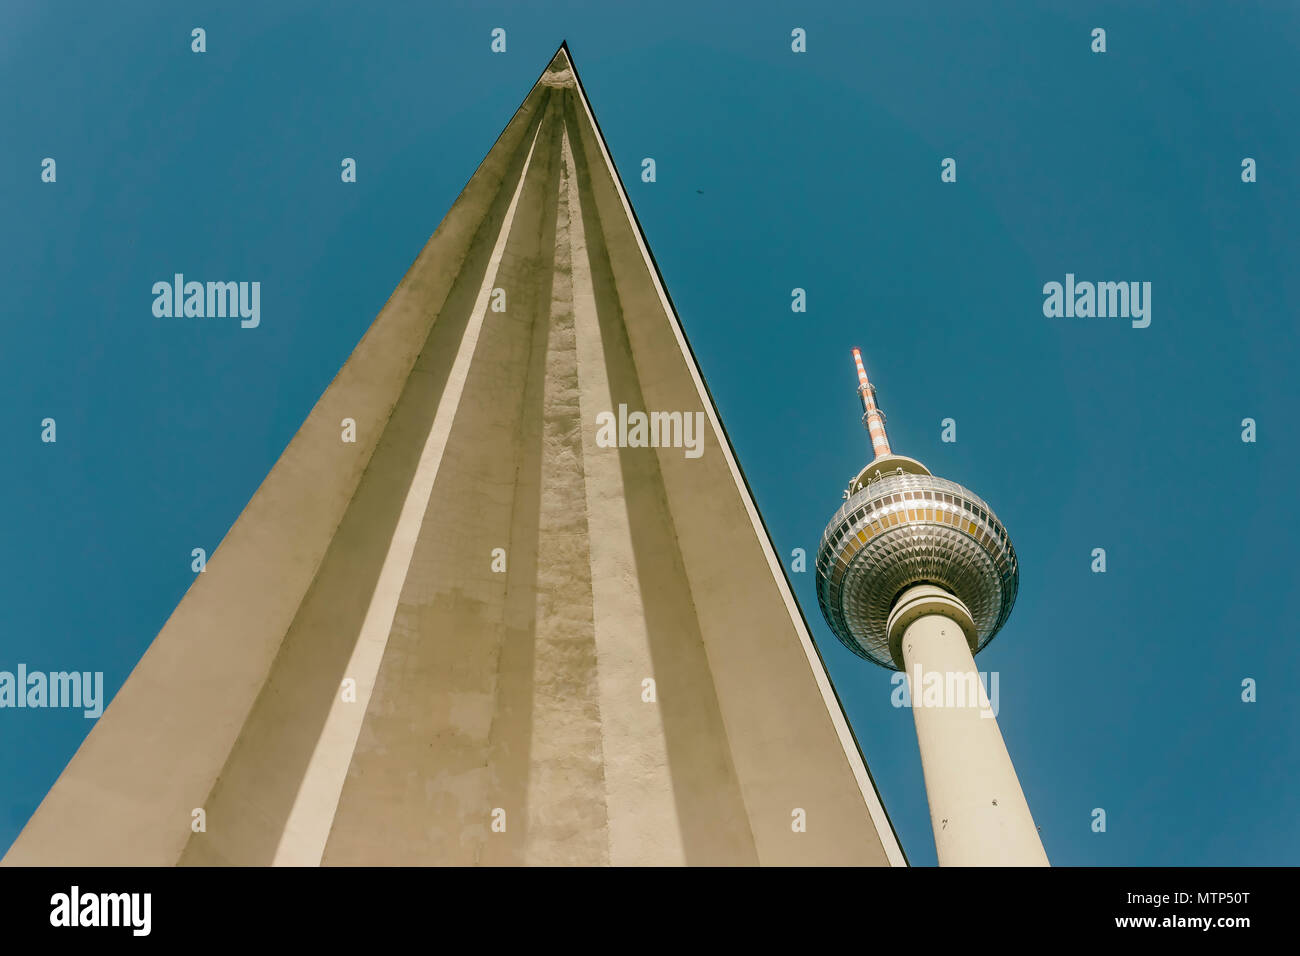 Berlin, Germany, May 08, 2018: Tv Tower with Triangular Architectural Feature - Stock Image